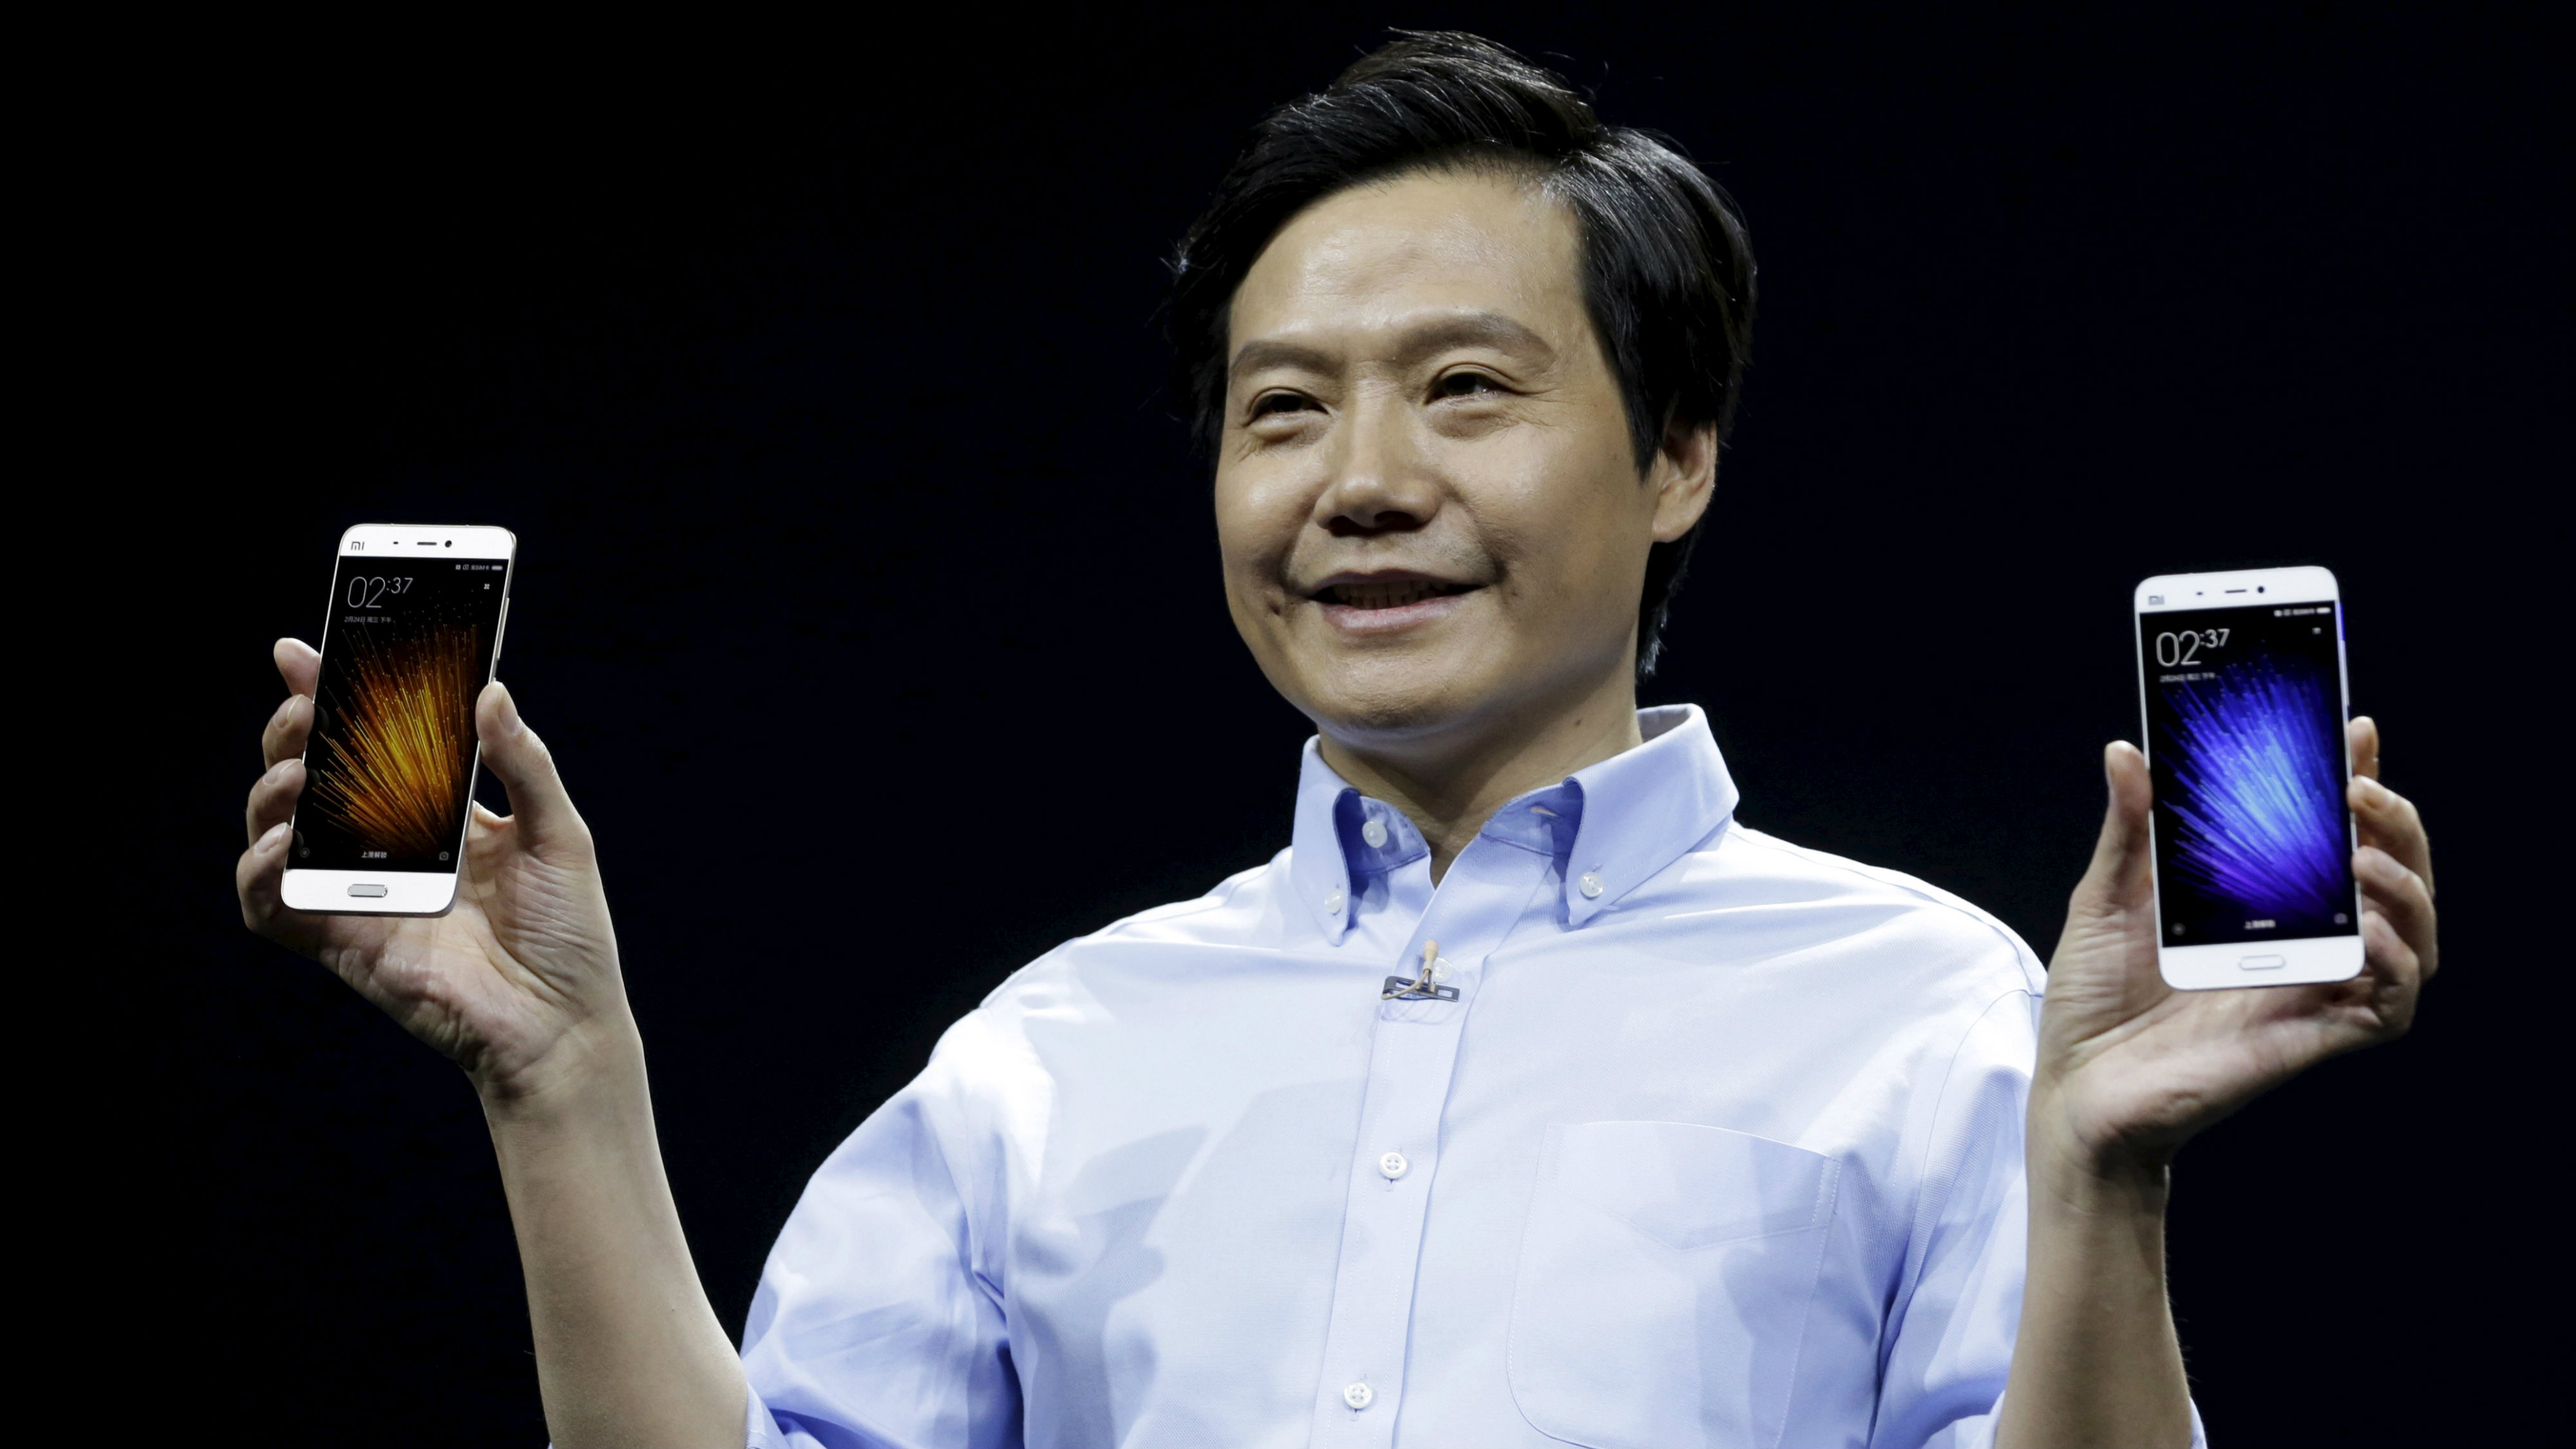 Xiaomi Founder Lei Jun Says A Book He Read About Steve